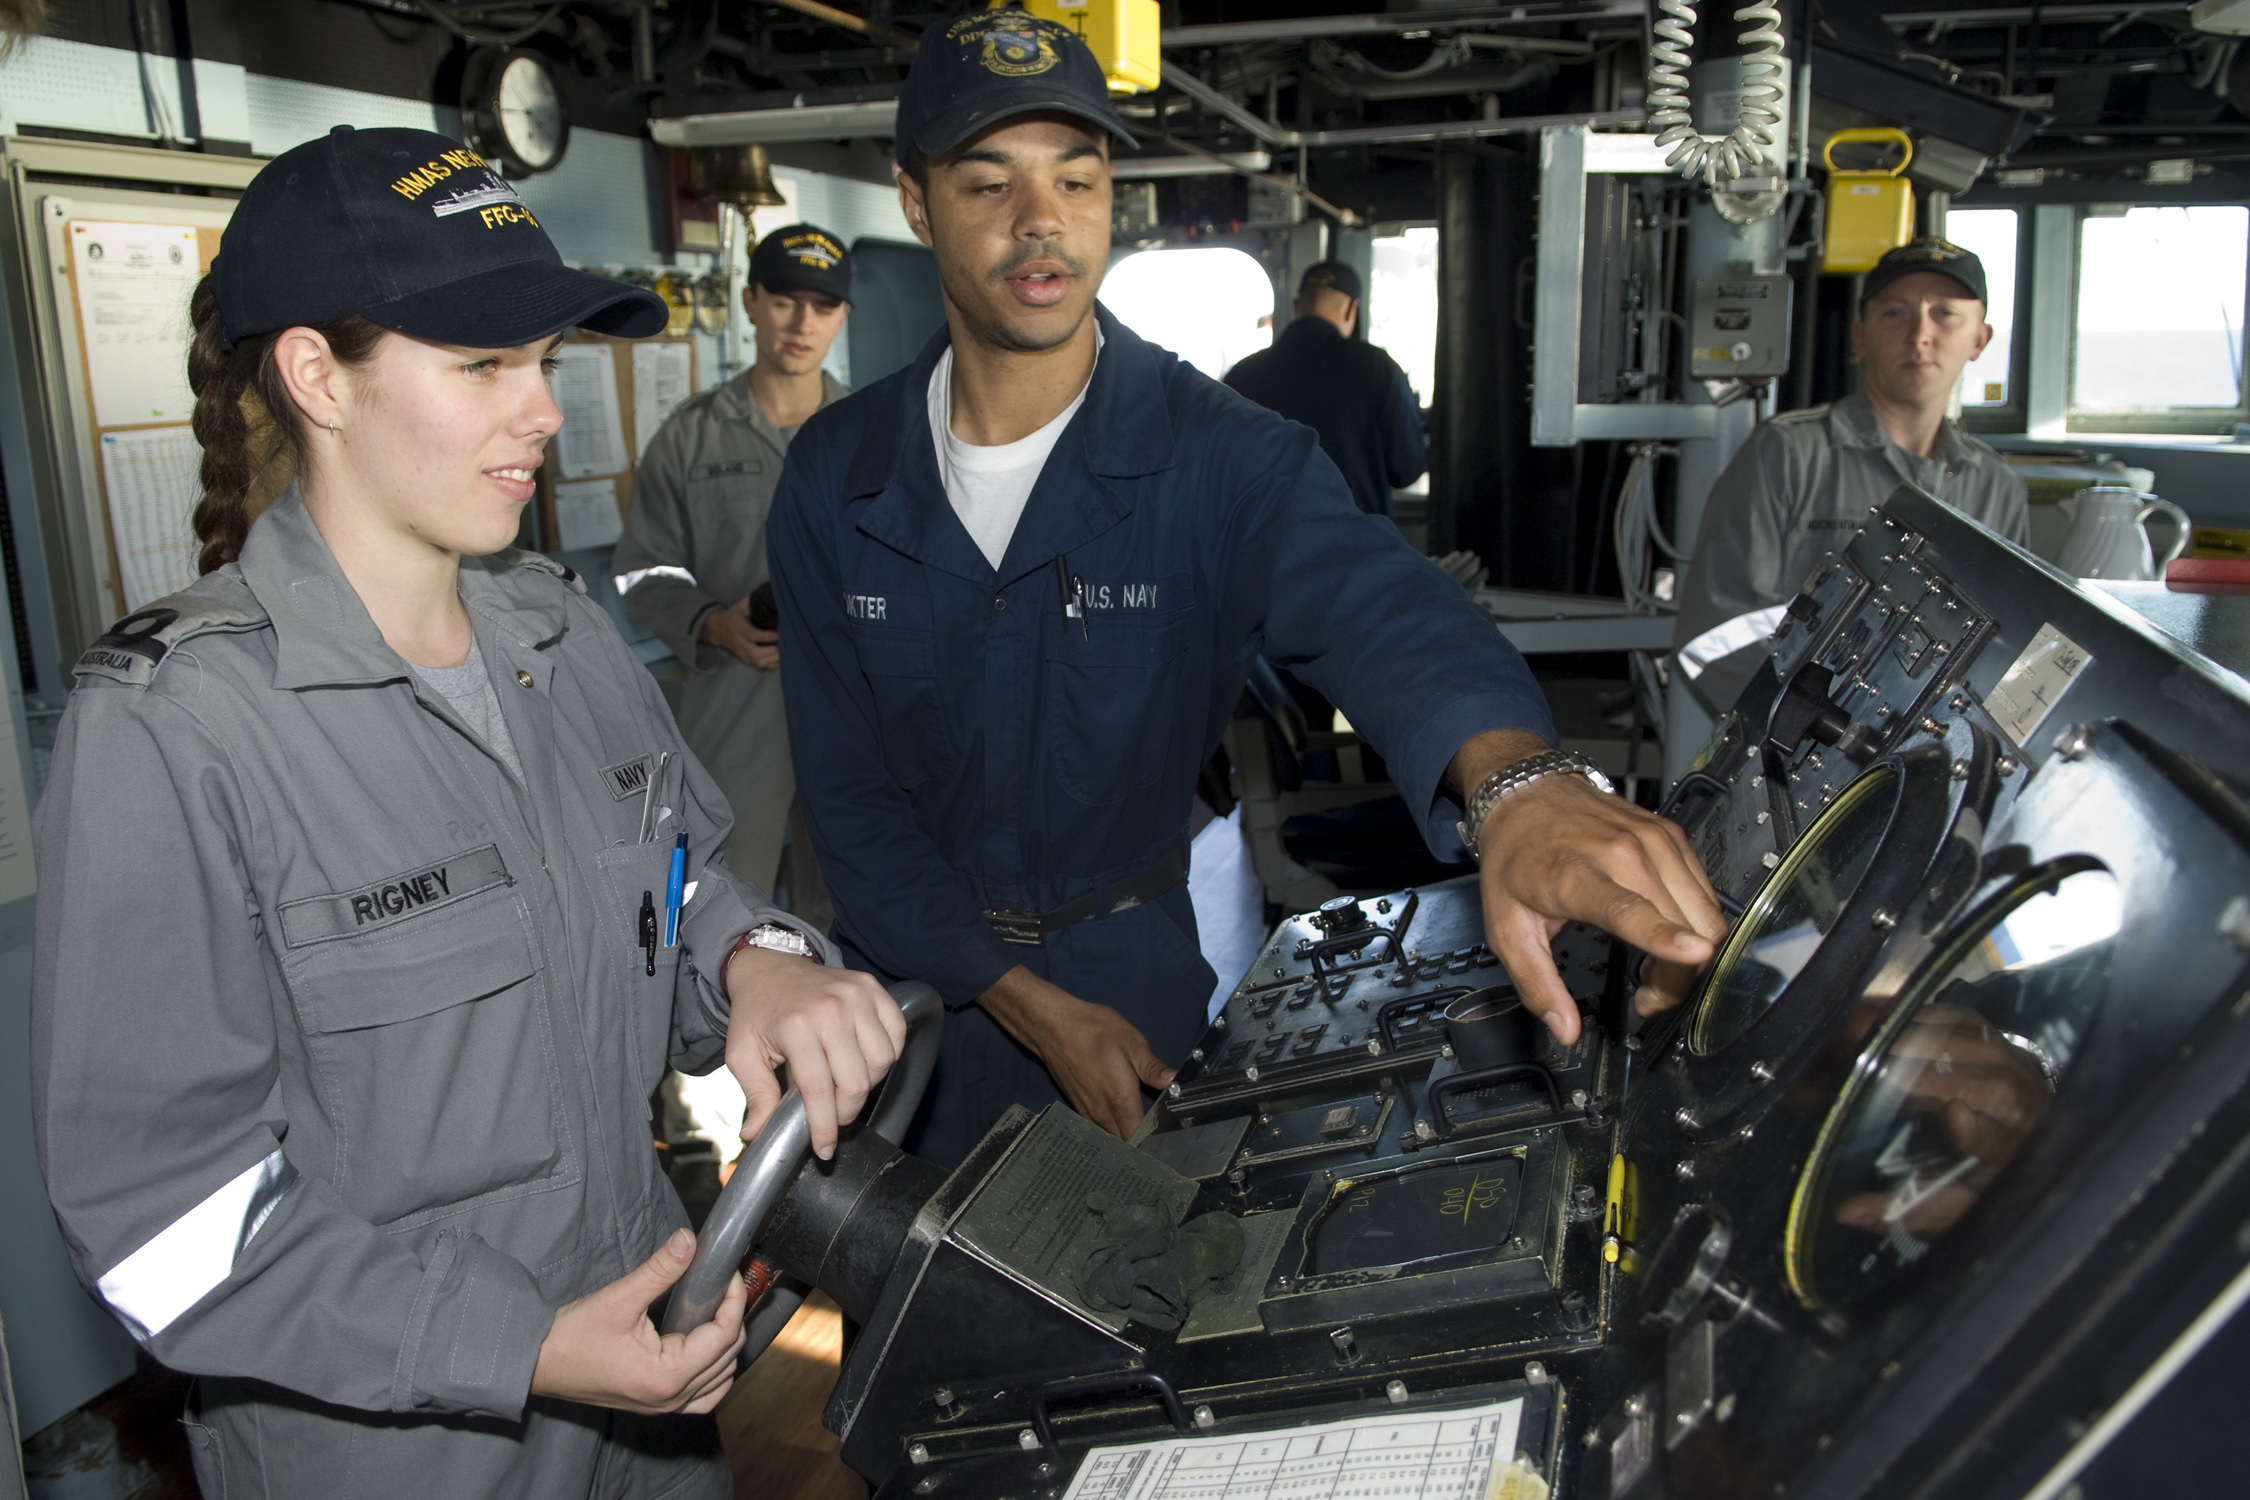 File:US Navy 090720-N-9123L-033 Seaman Michael Dokter, from ...